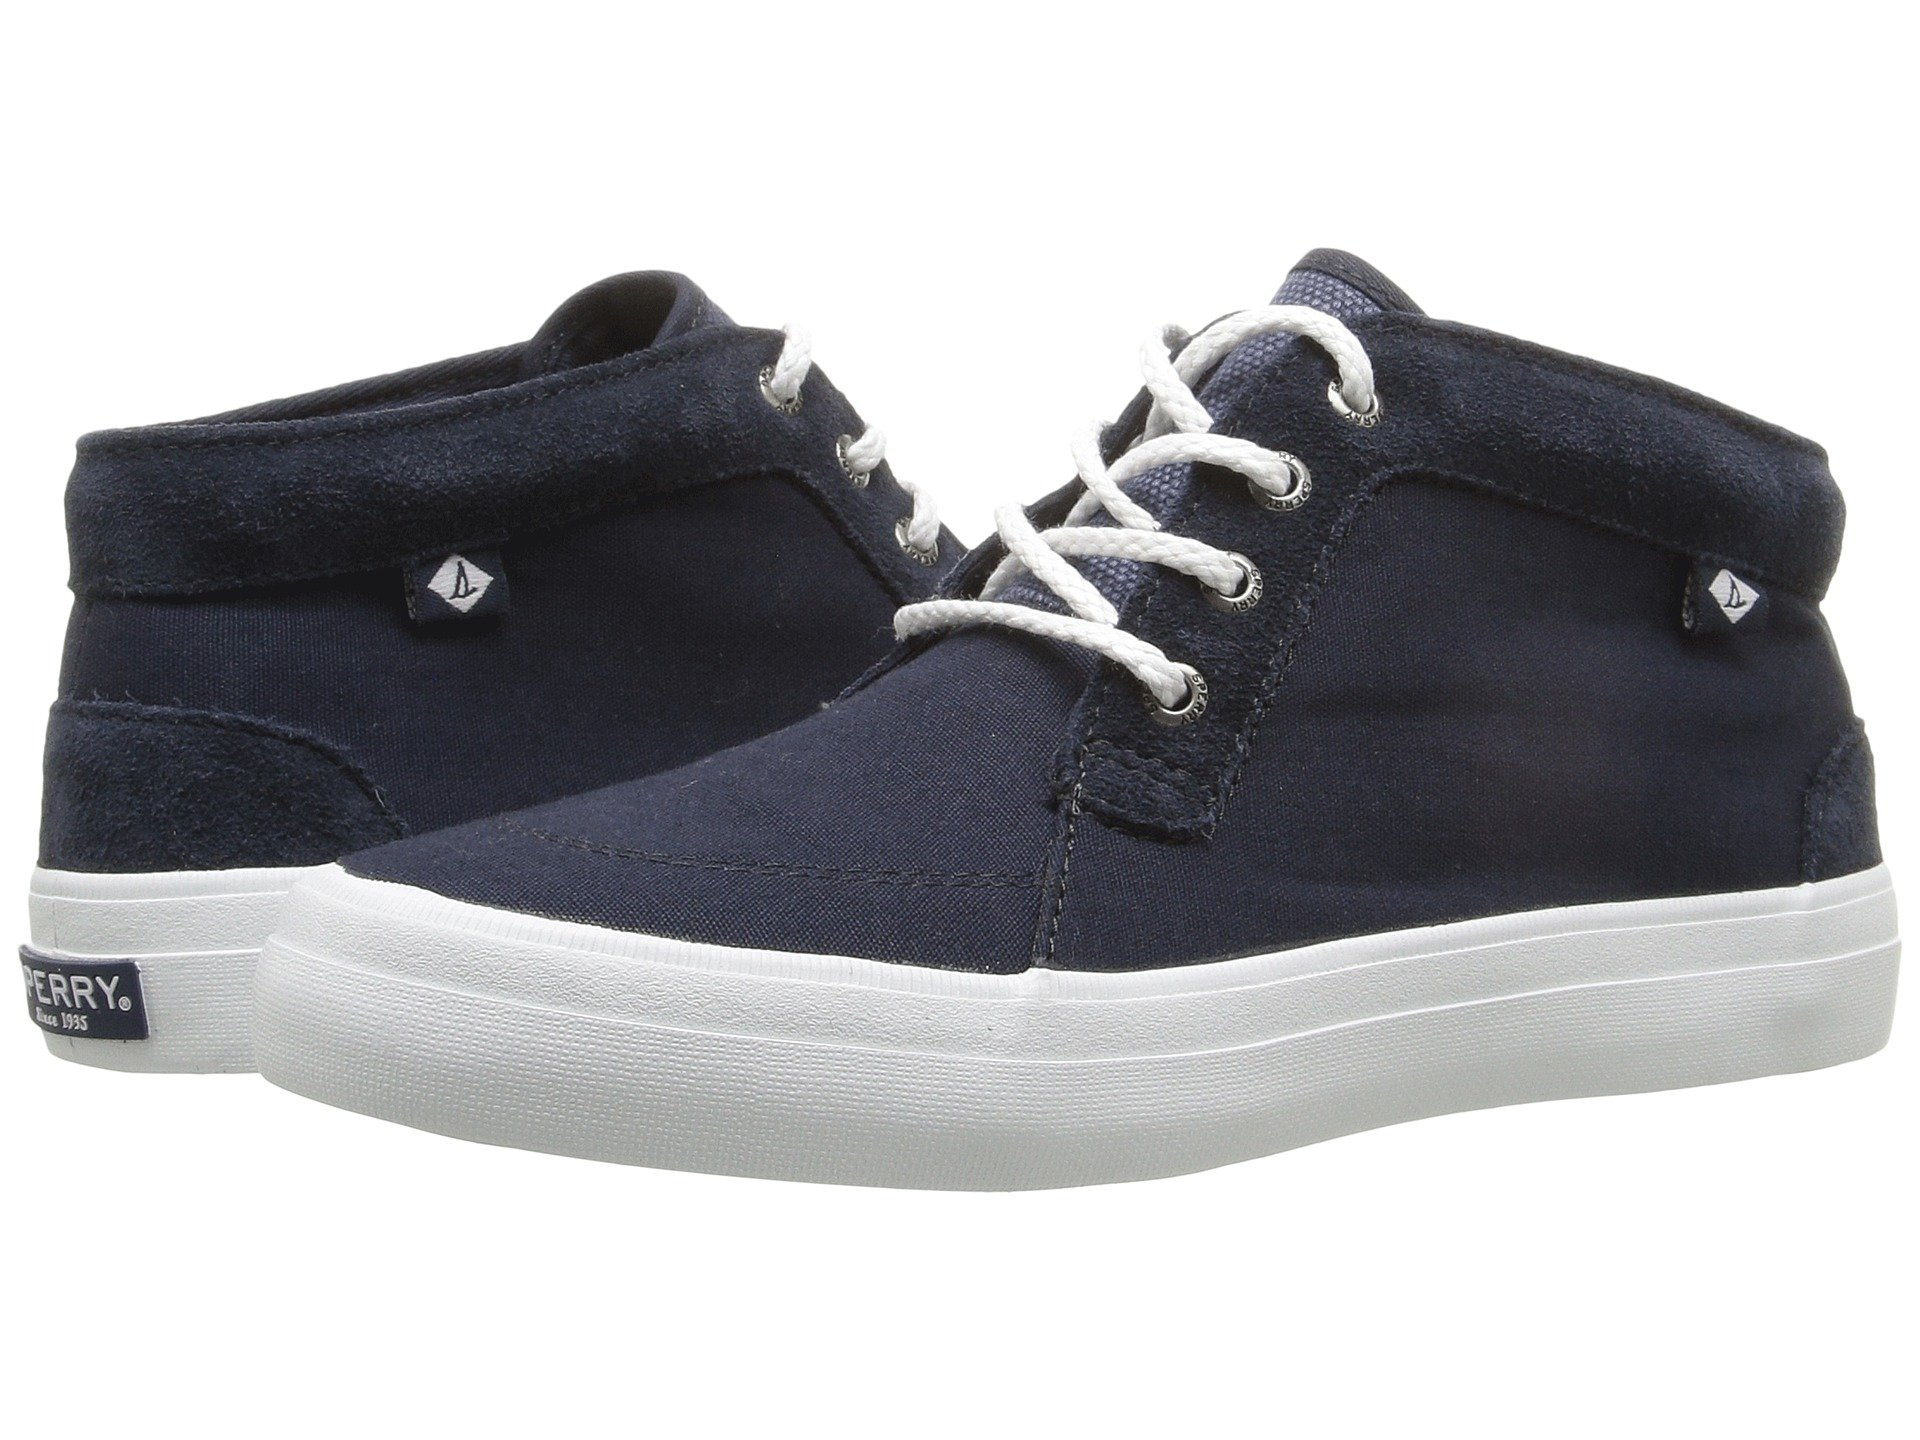 Sperry Crest Knoll Canvas sVYrHSo